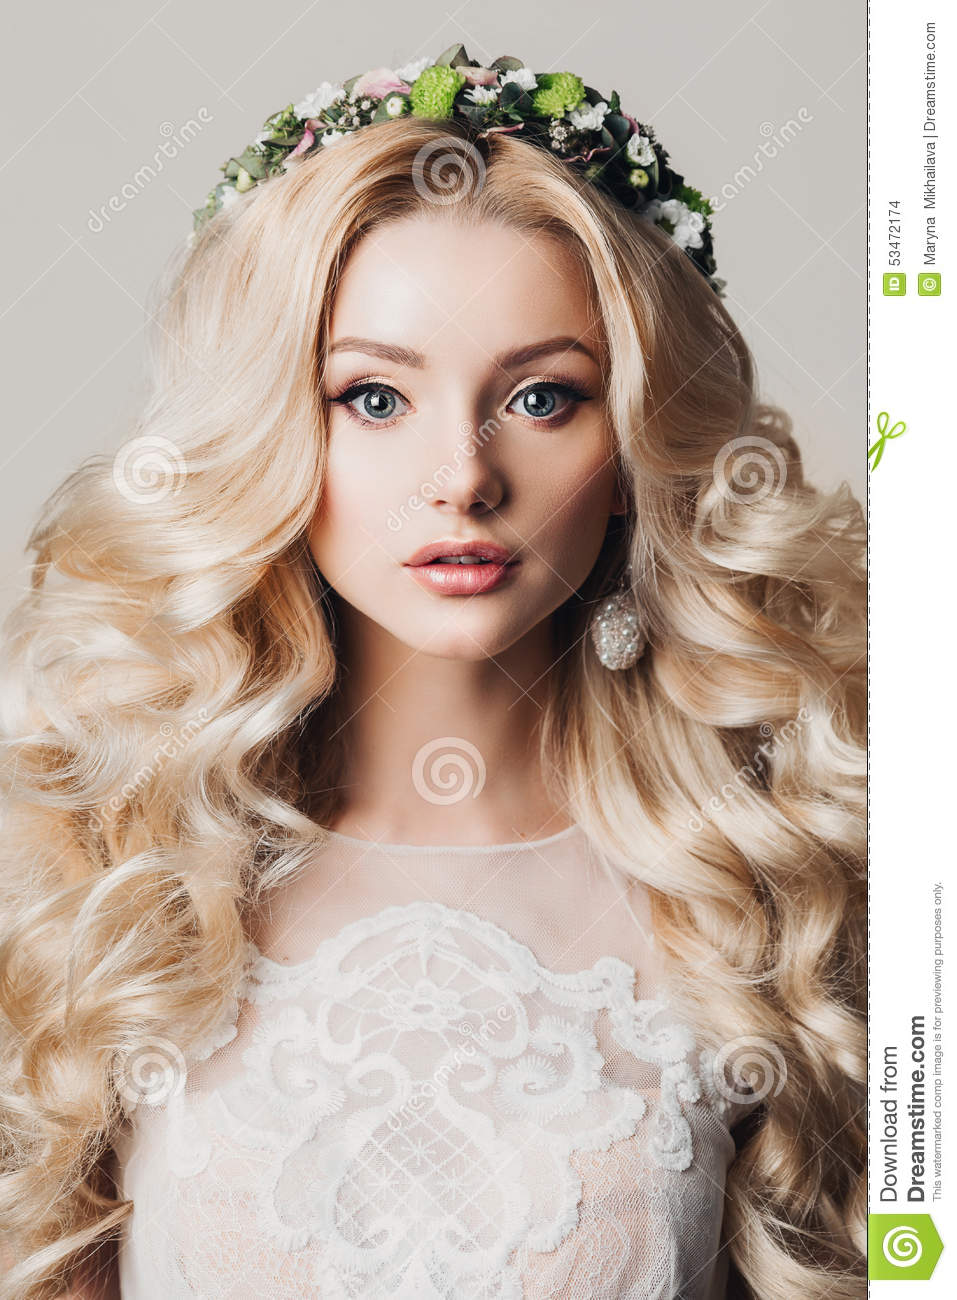 Portrait of a beautiful young blonde woman with long curly hair and eyes